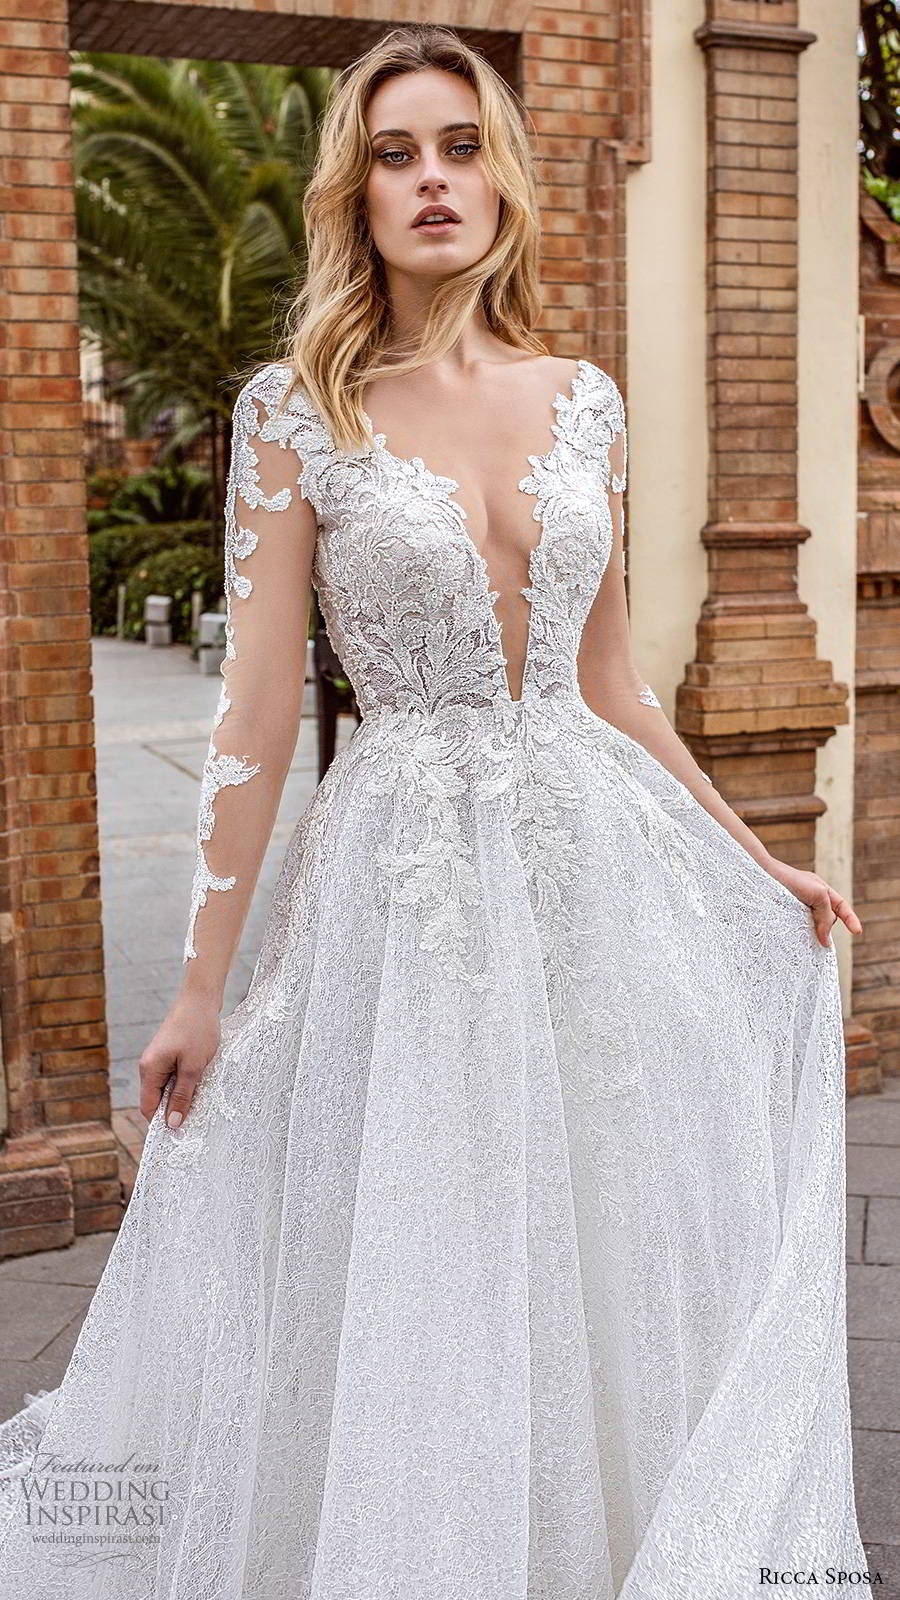 ricca sposa 2019 bridal illusion long sleeves plunging v neckline fully embellished elegant a line ball gown lace wedding dress v back chapel train (8) zv